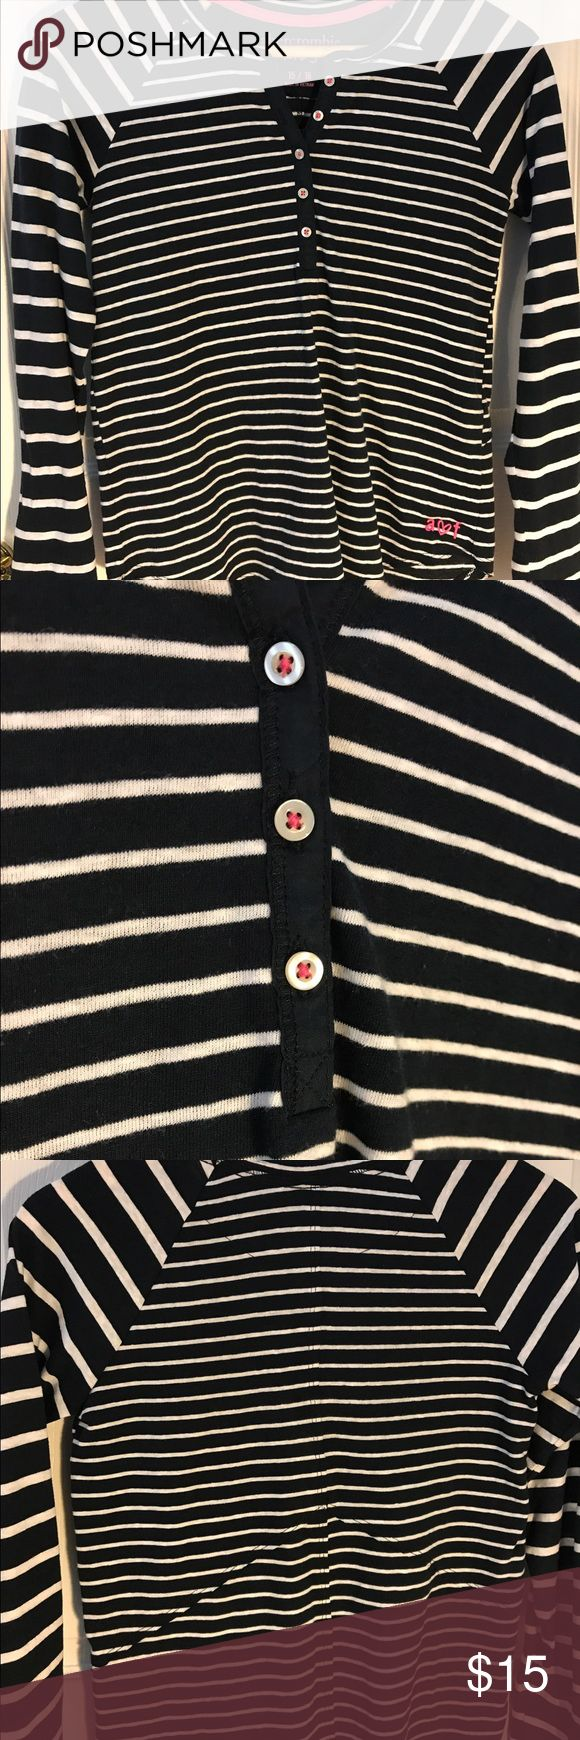 Black and White Striped Abercrombie Long Sleeve Brand New, Never Worn, Without Tags. Black and White, long sleeve shirt. Size is a 15/16 in kids but can fit a adult Small. abercrombie kids Tops Tees - Long Sleeve